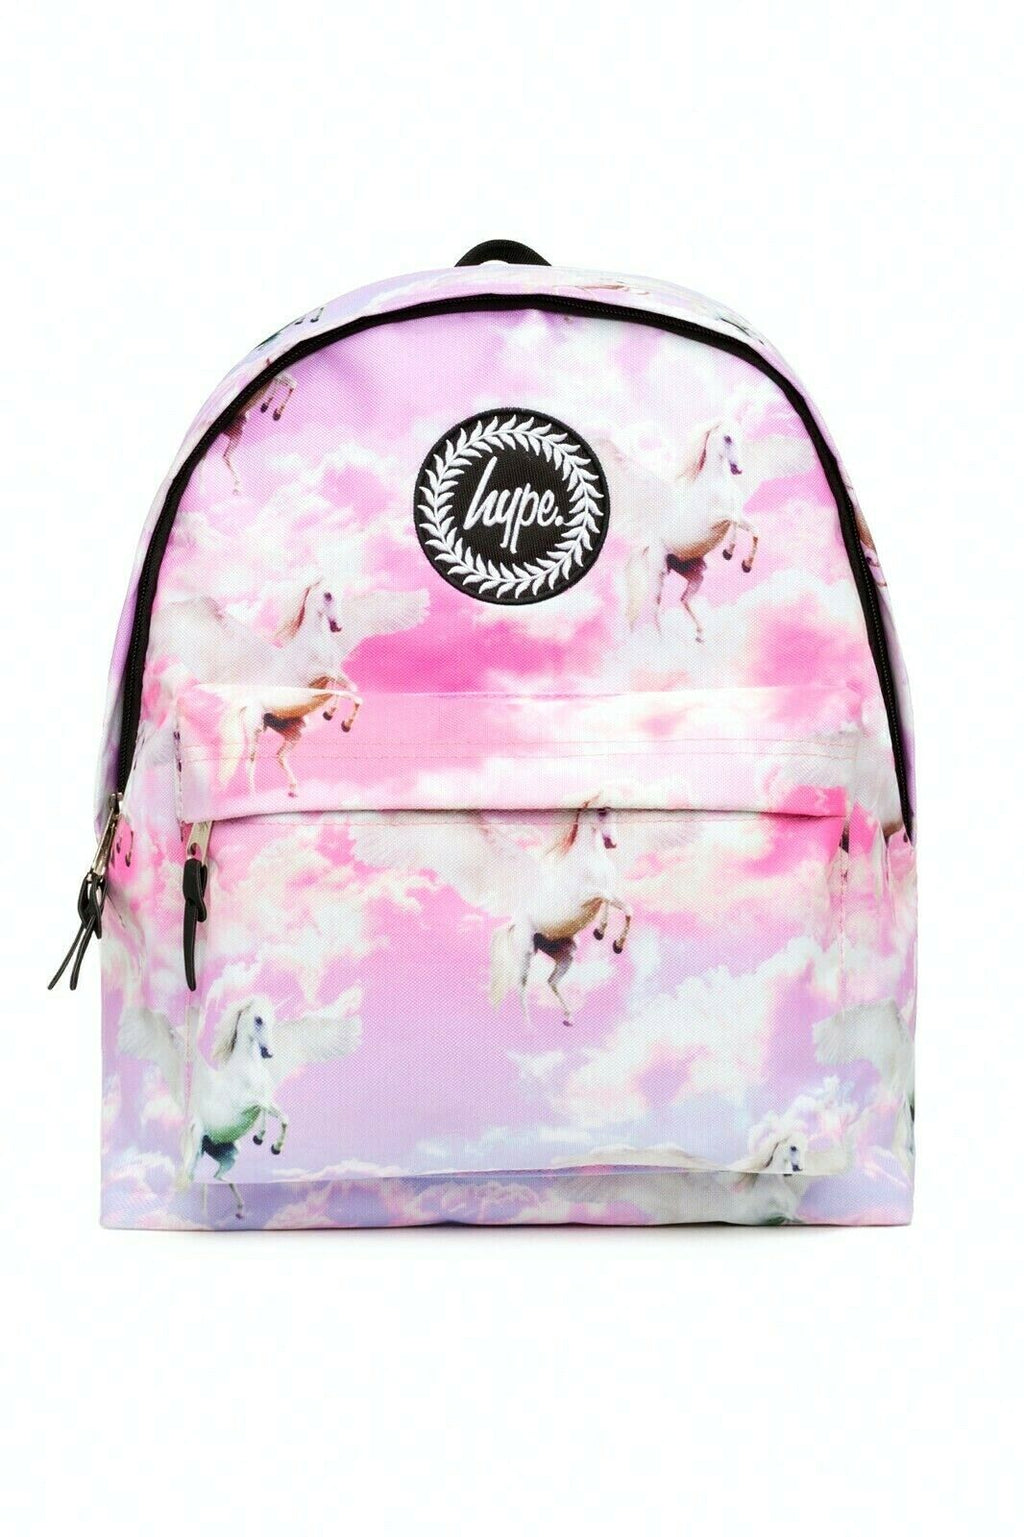 HYPE UNICORN SKIES BACKPACK RUCKSACK BAG - MULTI